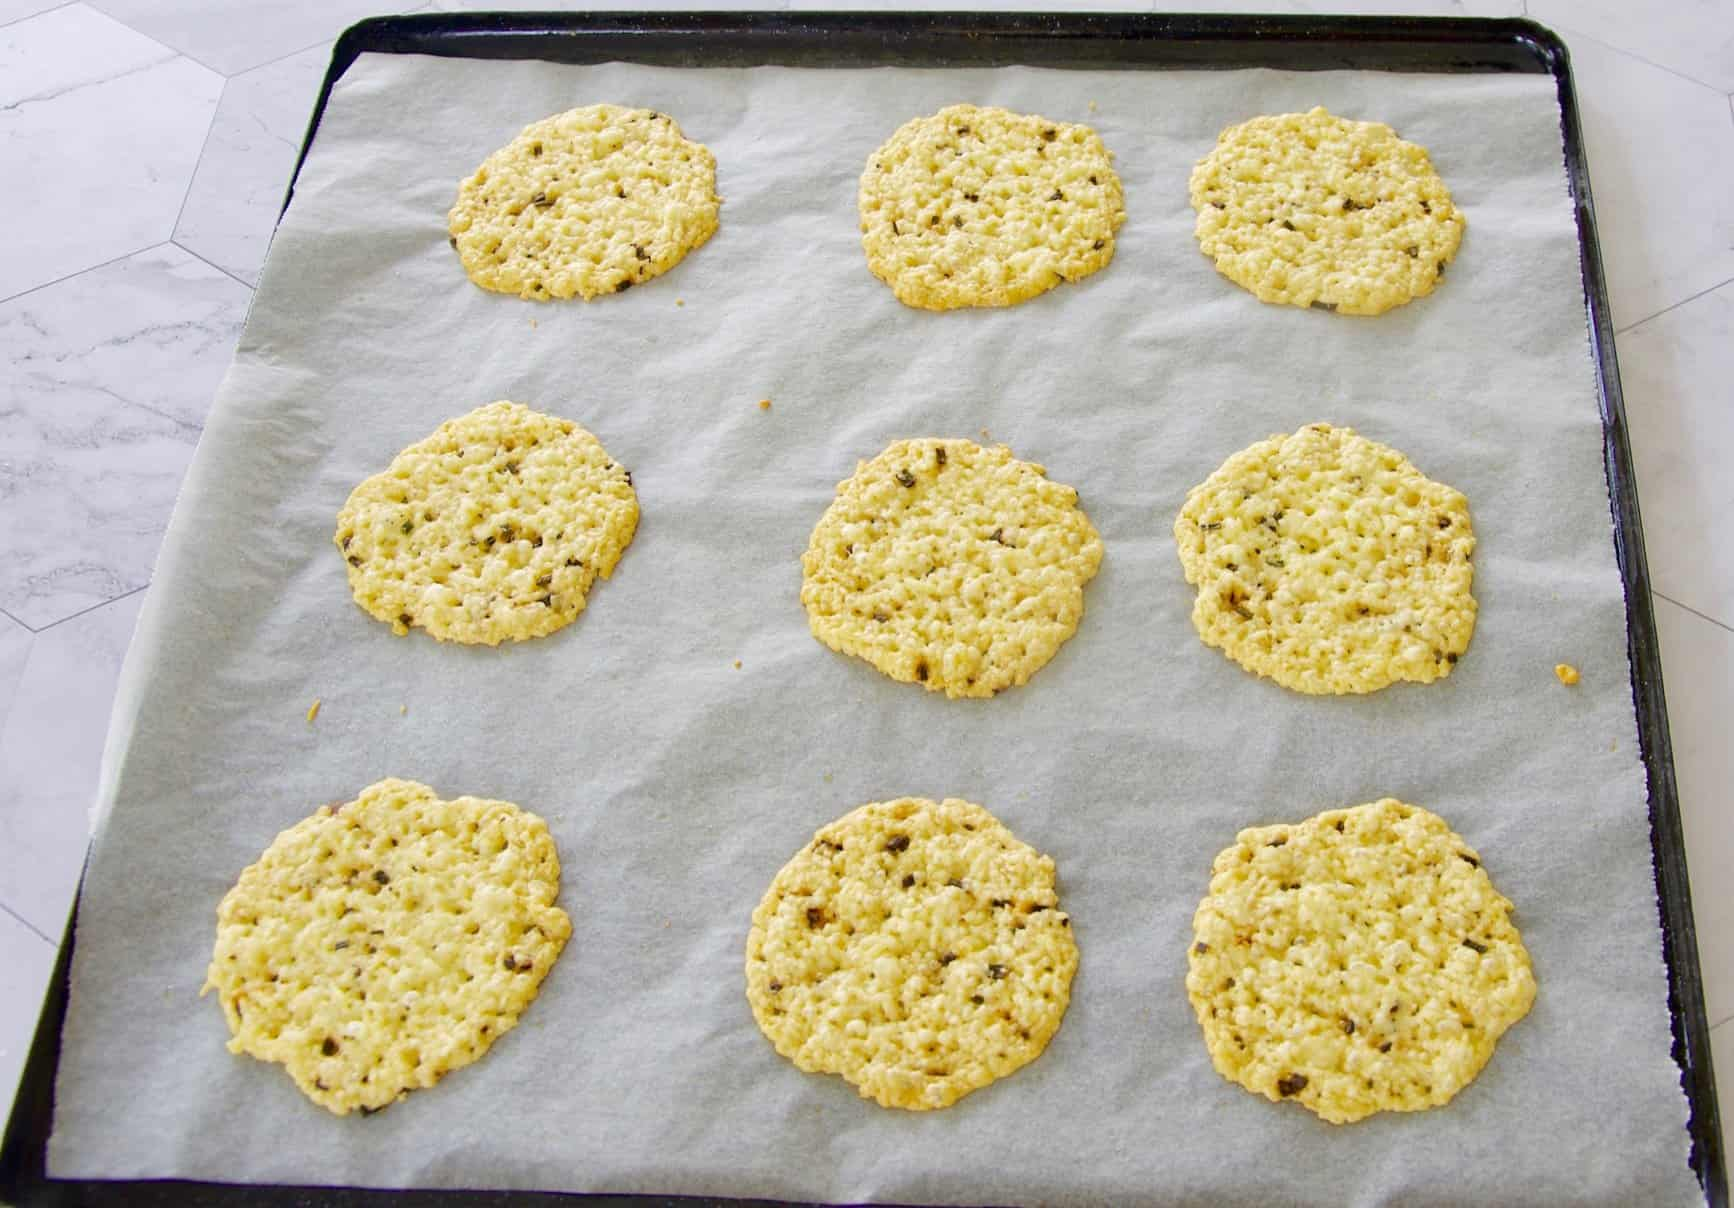 parmesan crisps baked on a tray with baking paper fresh out of the oven